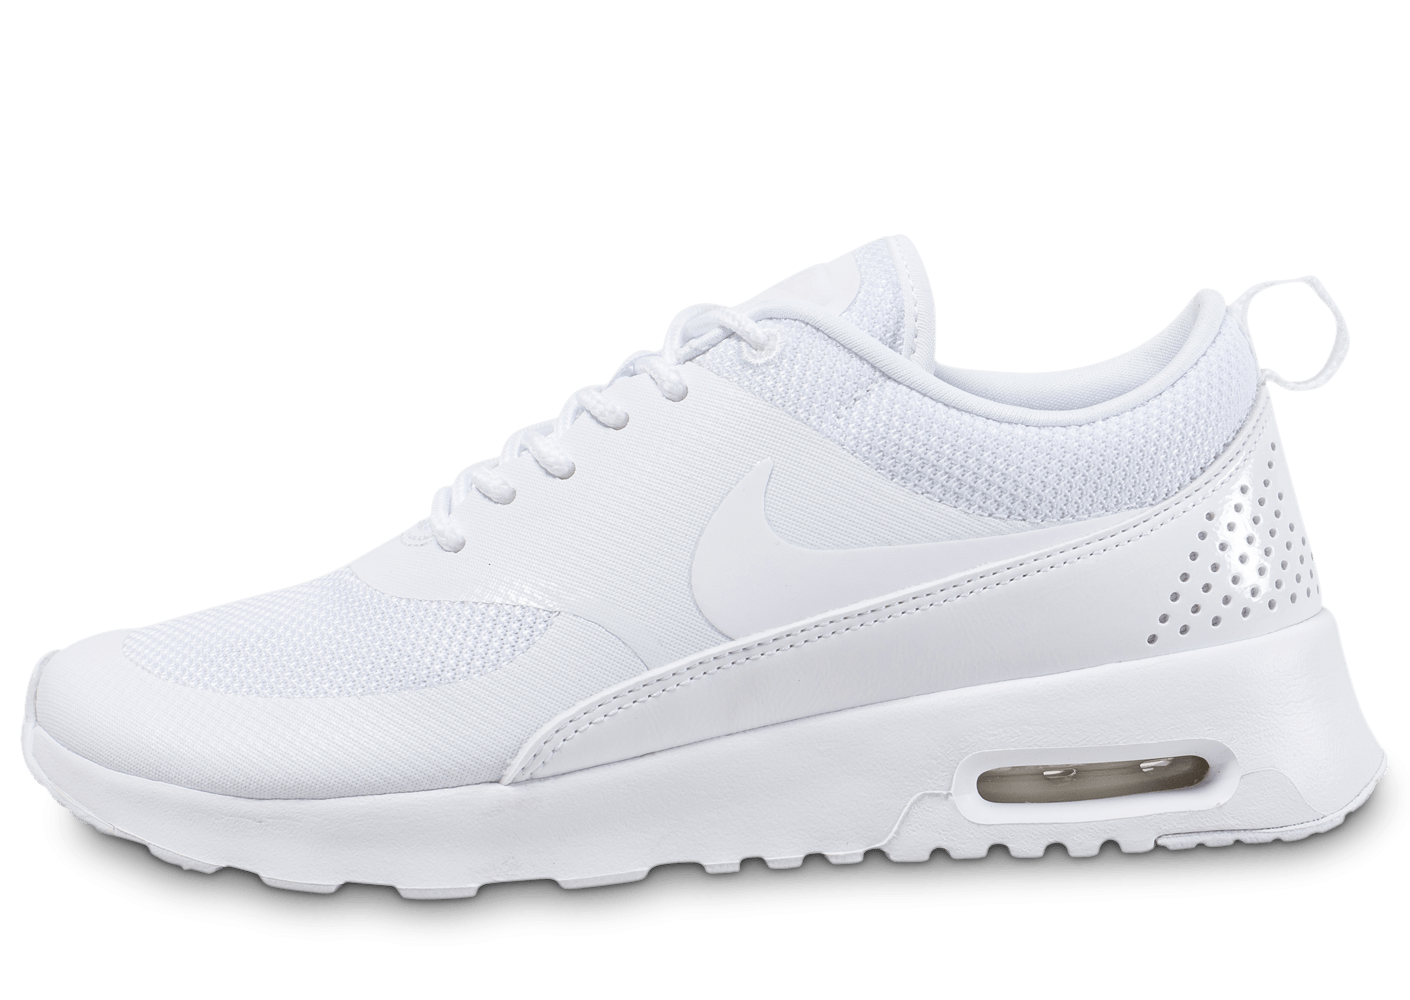 nike air max thea blanche chaussures femme chausport. Black Bedroom Furniture Sets. Home Design Ideas